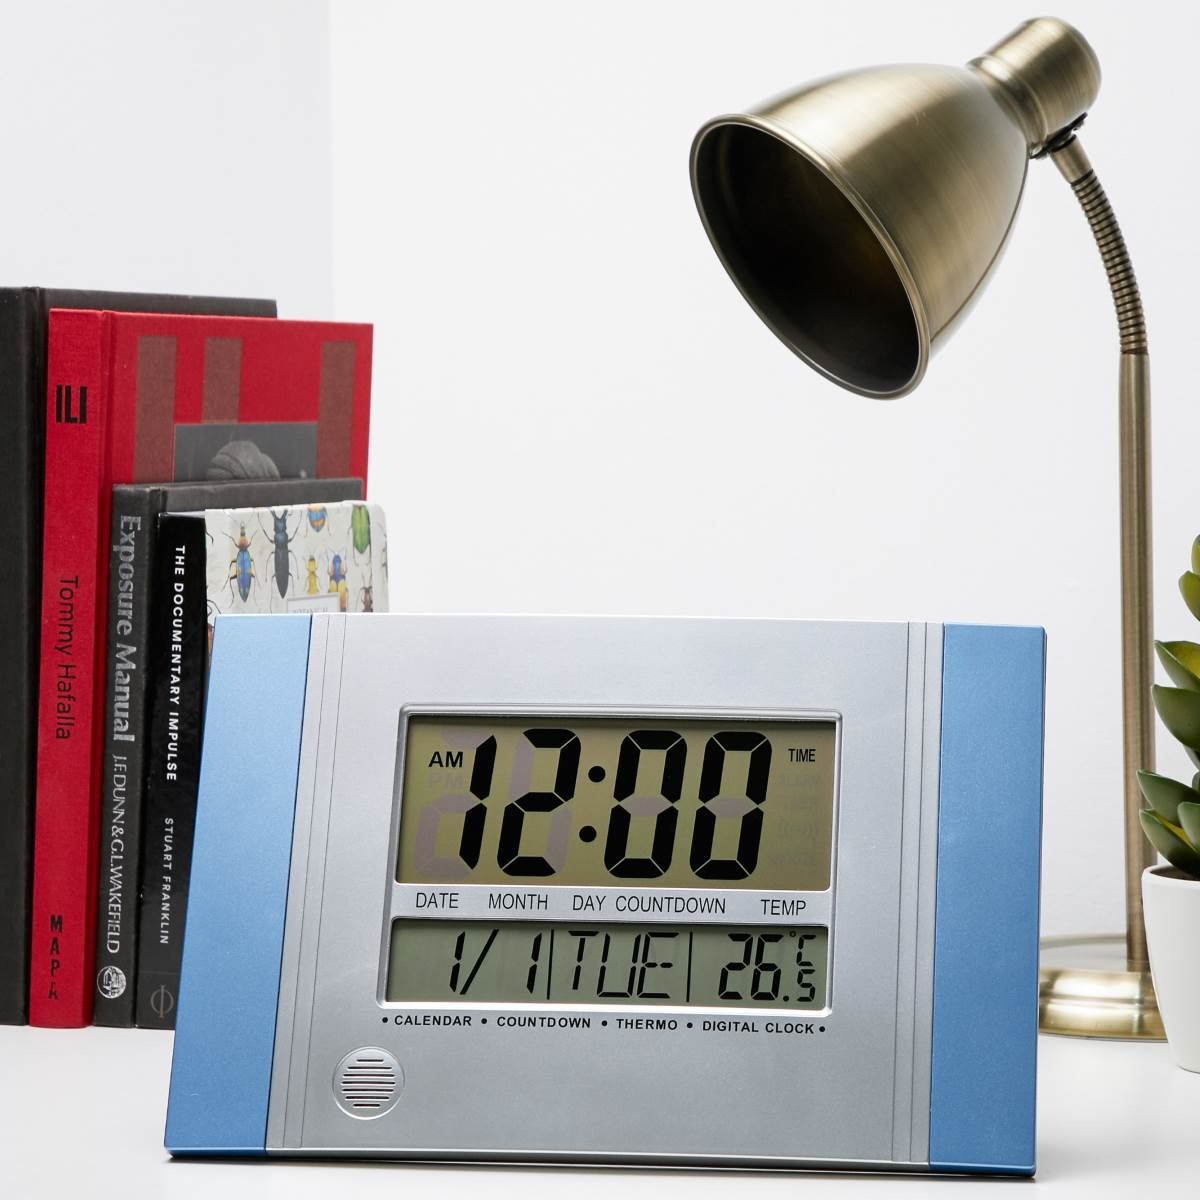 Checkmate Connerty Multifunctional Digital Wall and Desk Clock Blue 29cm VGW 601Blue Lifestyle1